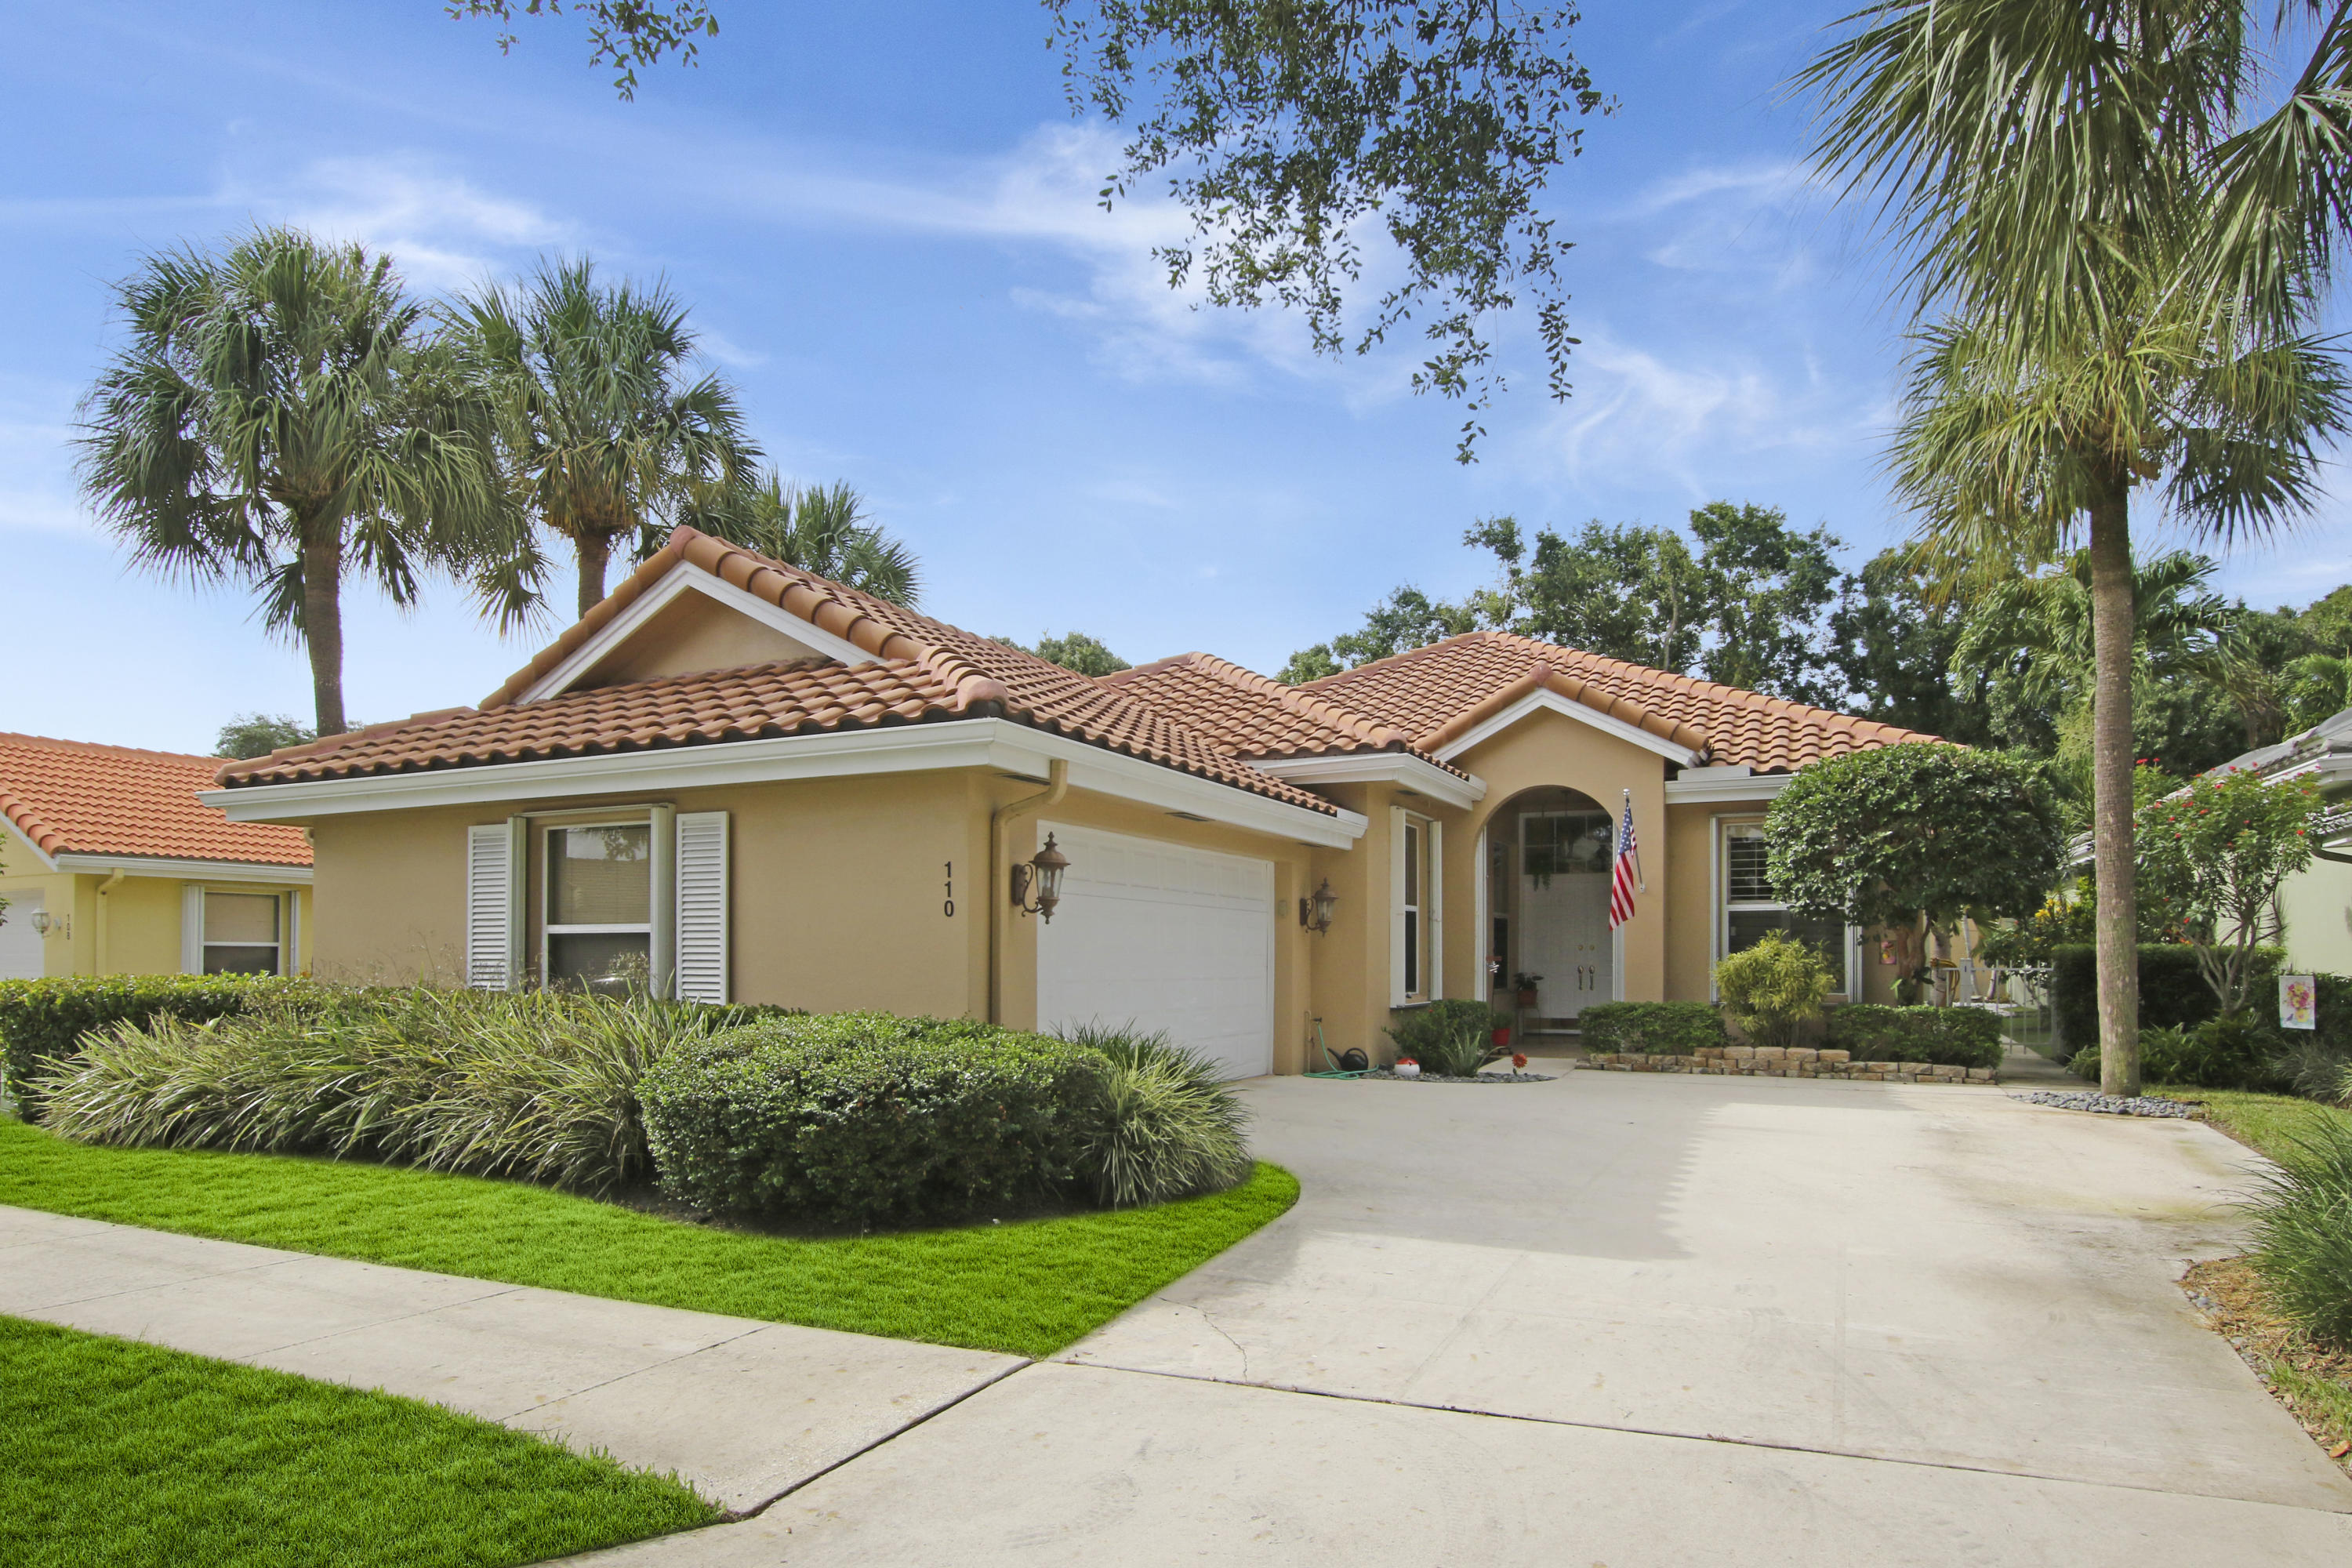 110 S Hampton Drive, Jupiter in Palm Beach County, FL 33458 Home for Sale